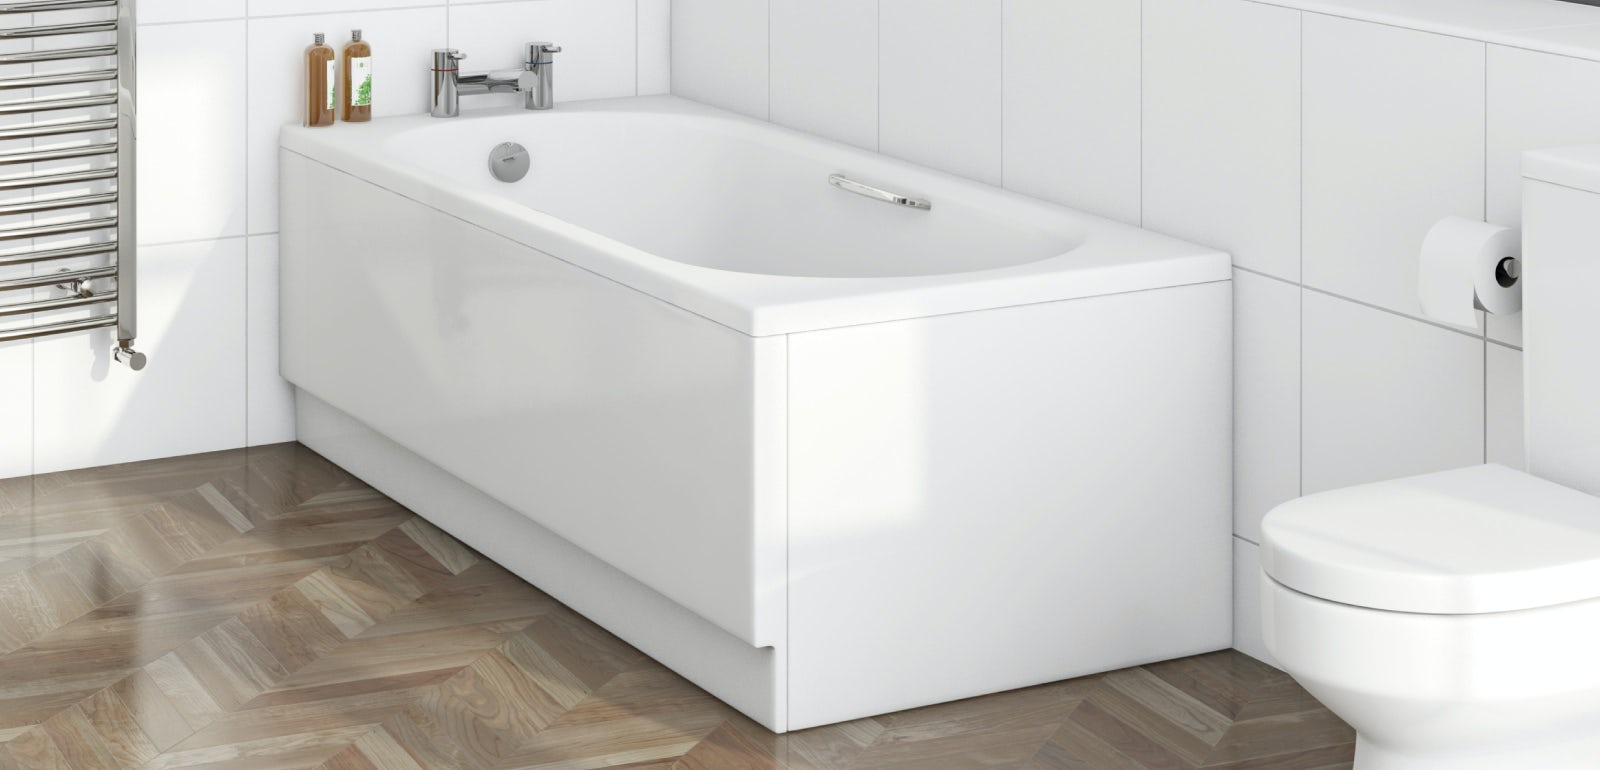 Standard sizes of baths in the panel house 13